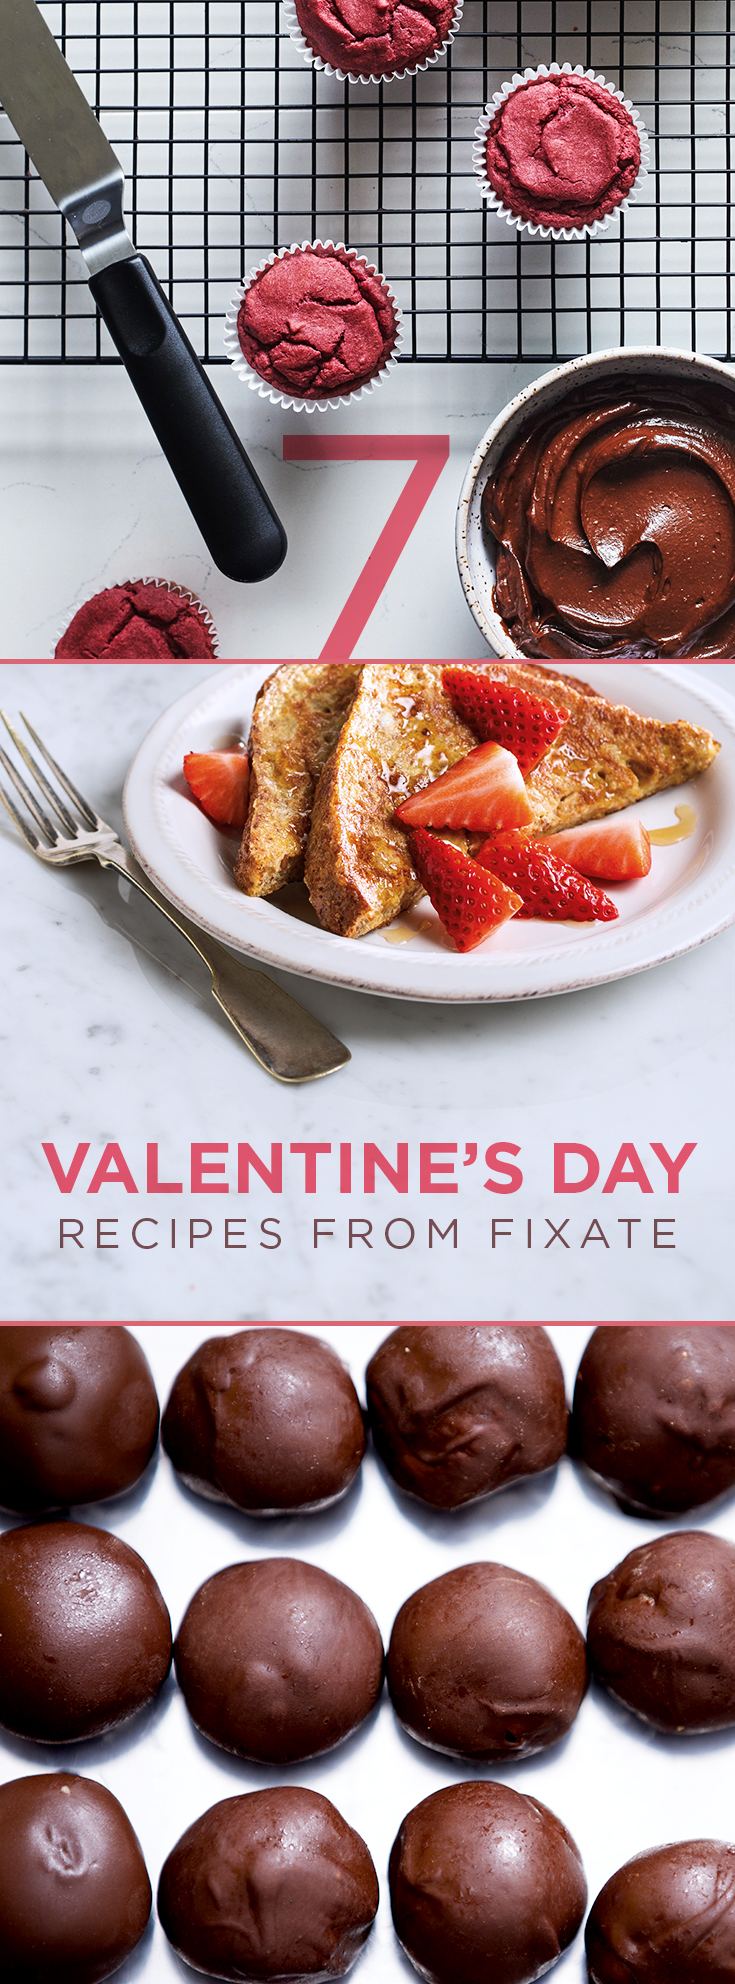 7 Sweet Valentine S Day Recipes From Fixate The Beachbody Blog